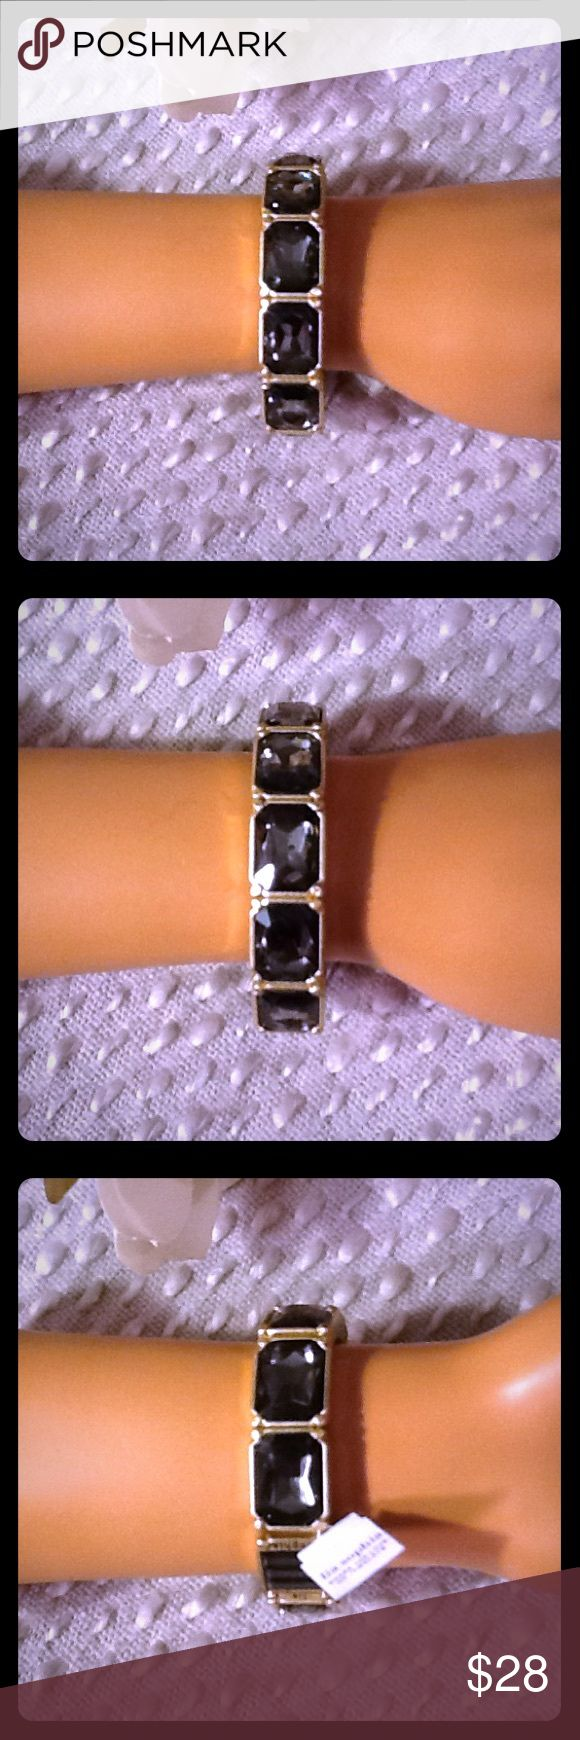 Lia Sophia Stretch Bracelet NWT Charcoal Gray Gems Beautiful Lia Sophia stretch bracelet, NWT, gemstones are charcoal gray colored, band is metallic gold, should stretch to fit most wrist sizes. Bundle to save 15% off your purchase of 2 or more items from my closet! Lia Sophia Jewelry Bracelets